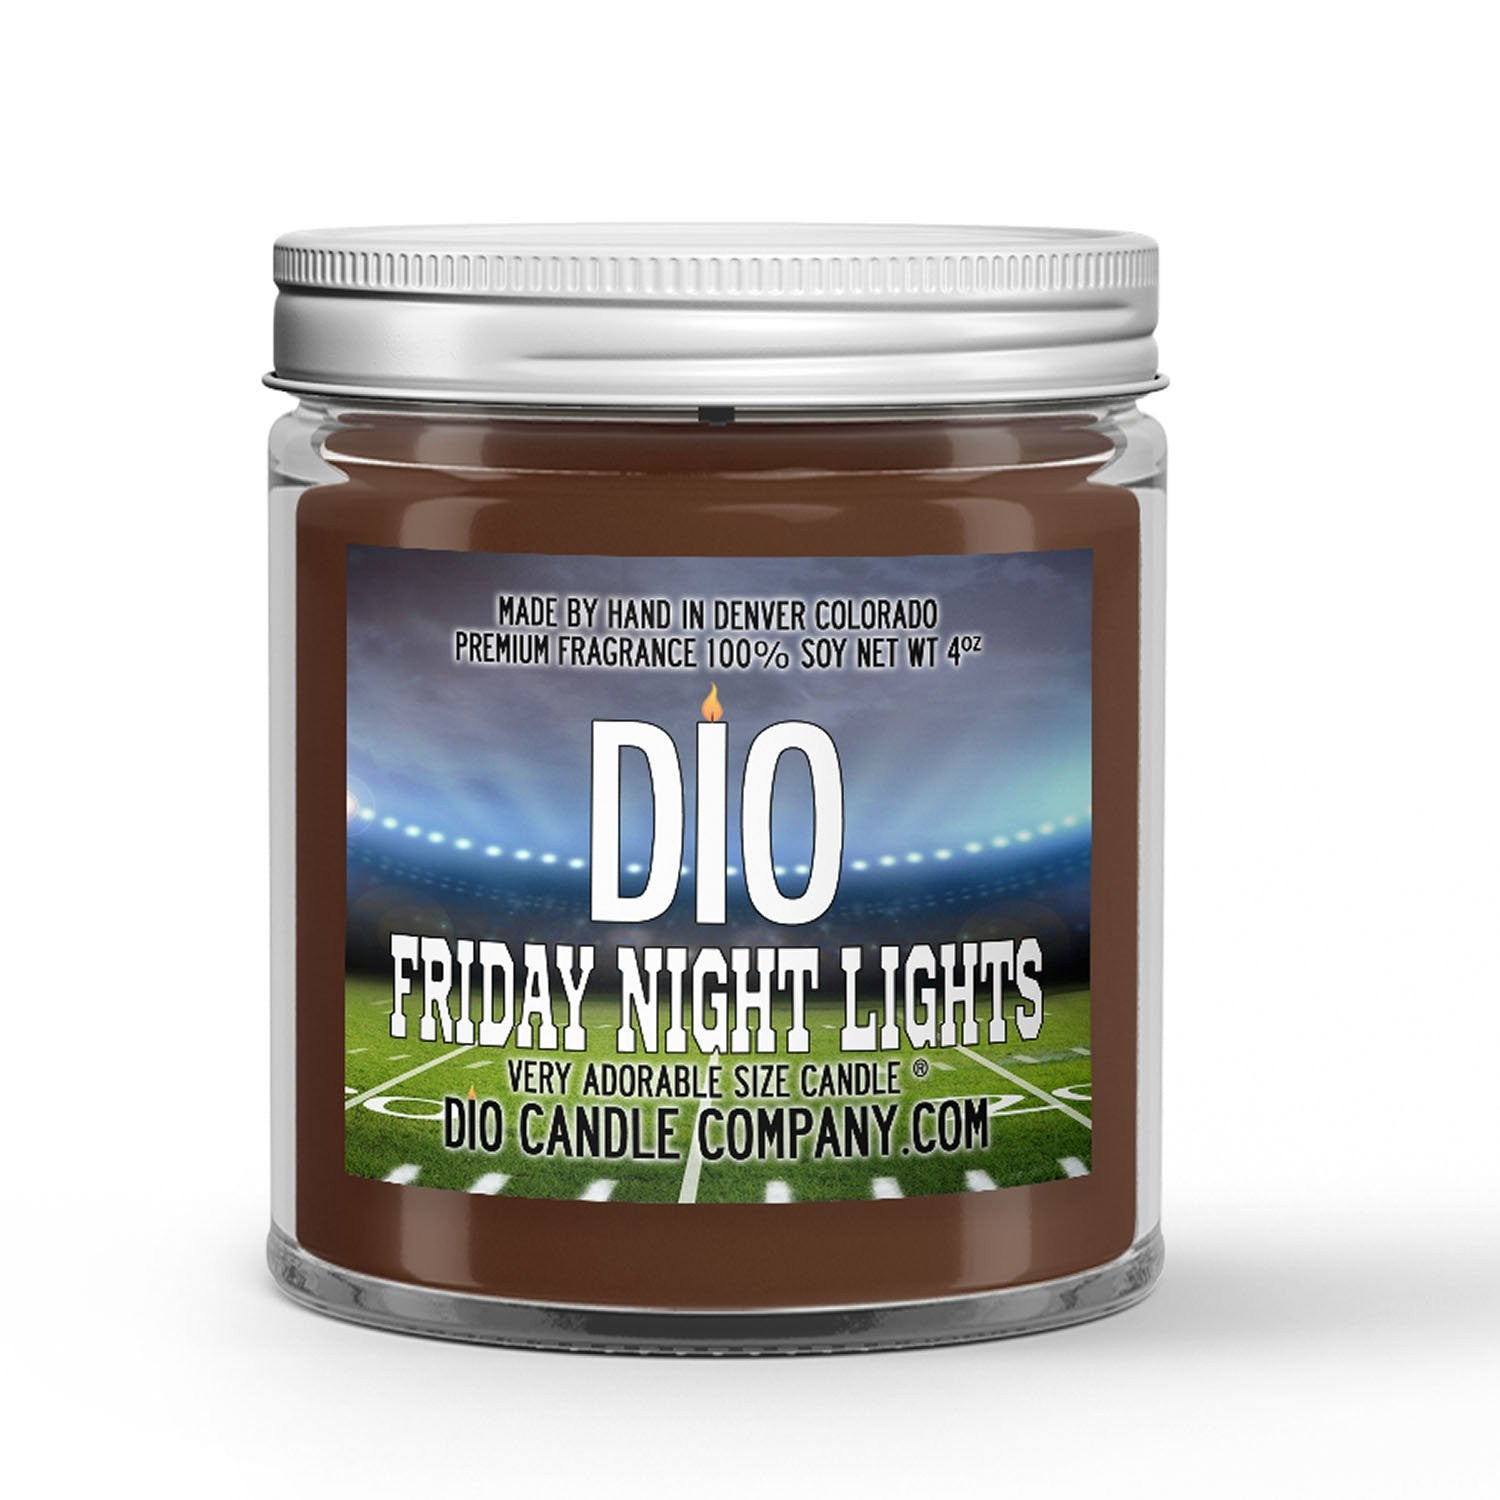 Friday Night Lights Candle - Grass Field - Night Air - 4oz Very Adorable Size Candle® - Dio Candle Company